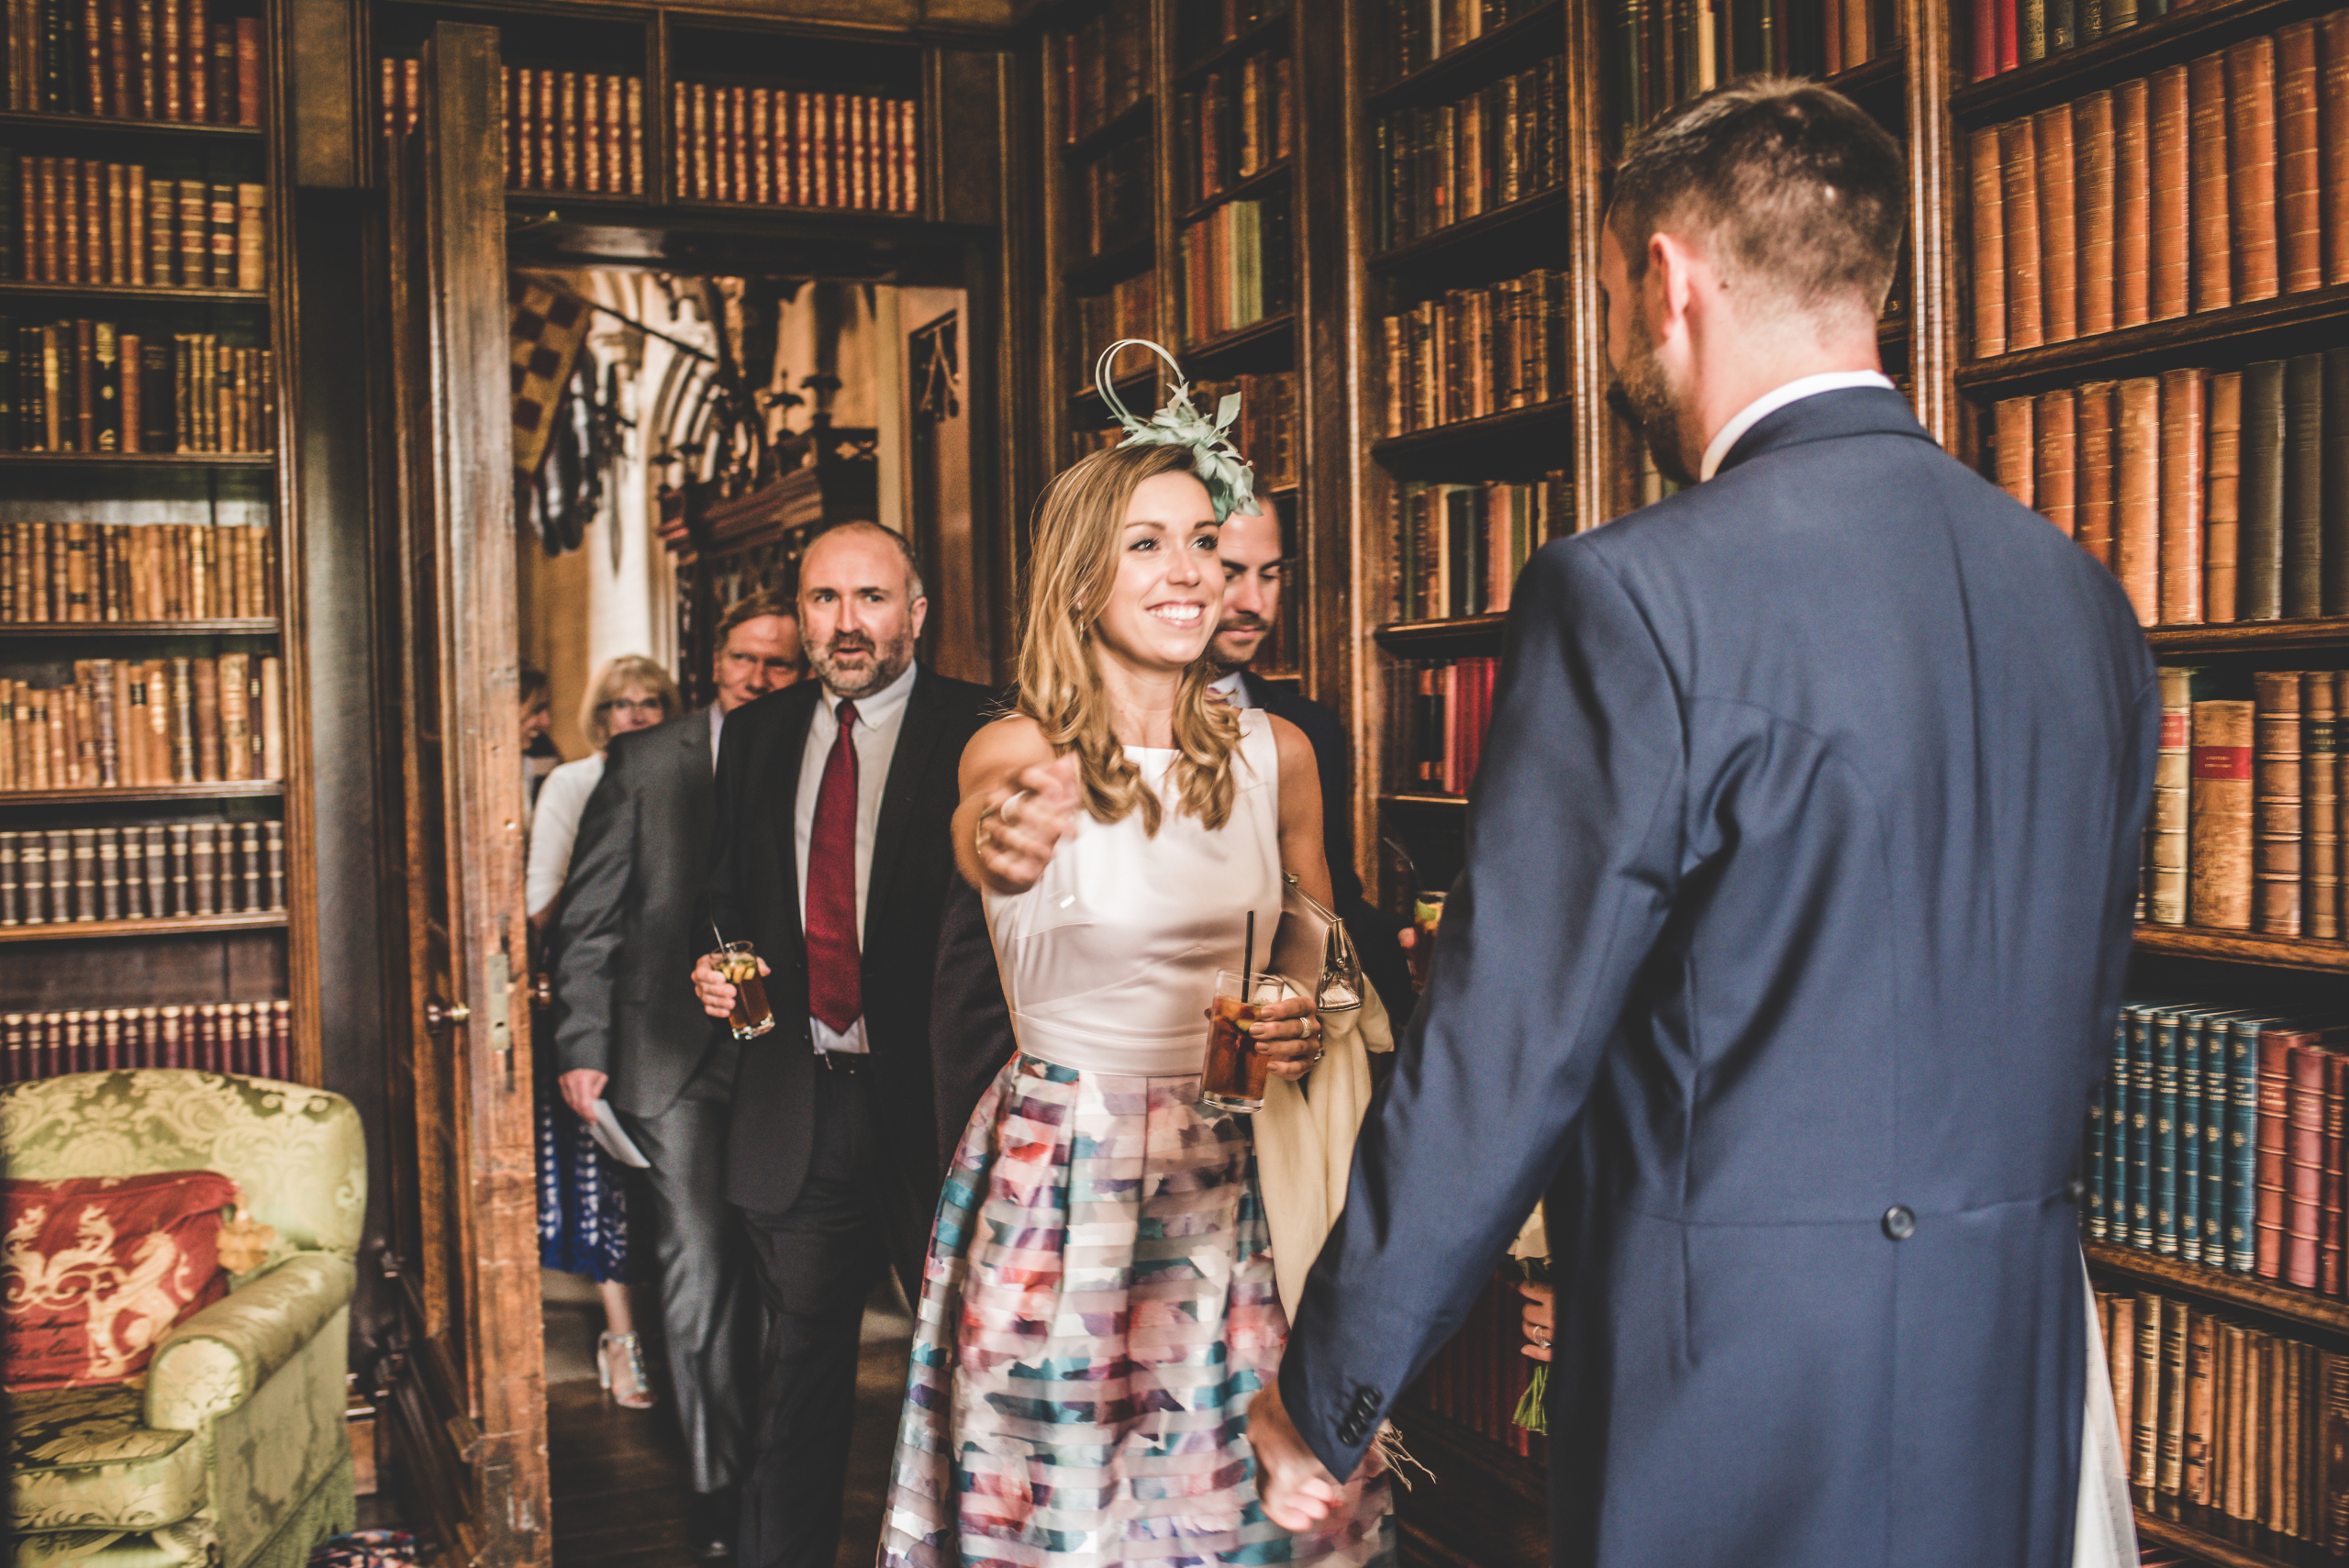 Guests gathering in a library